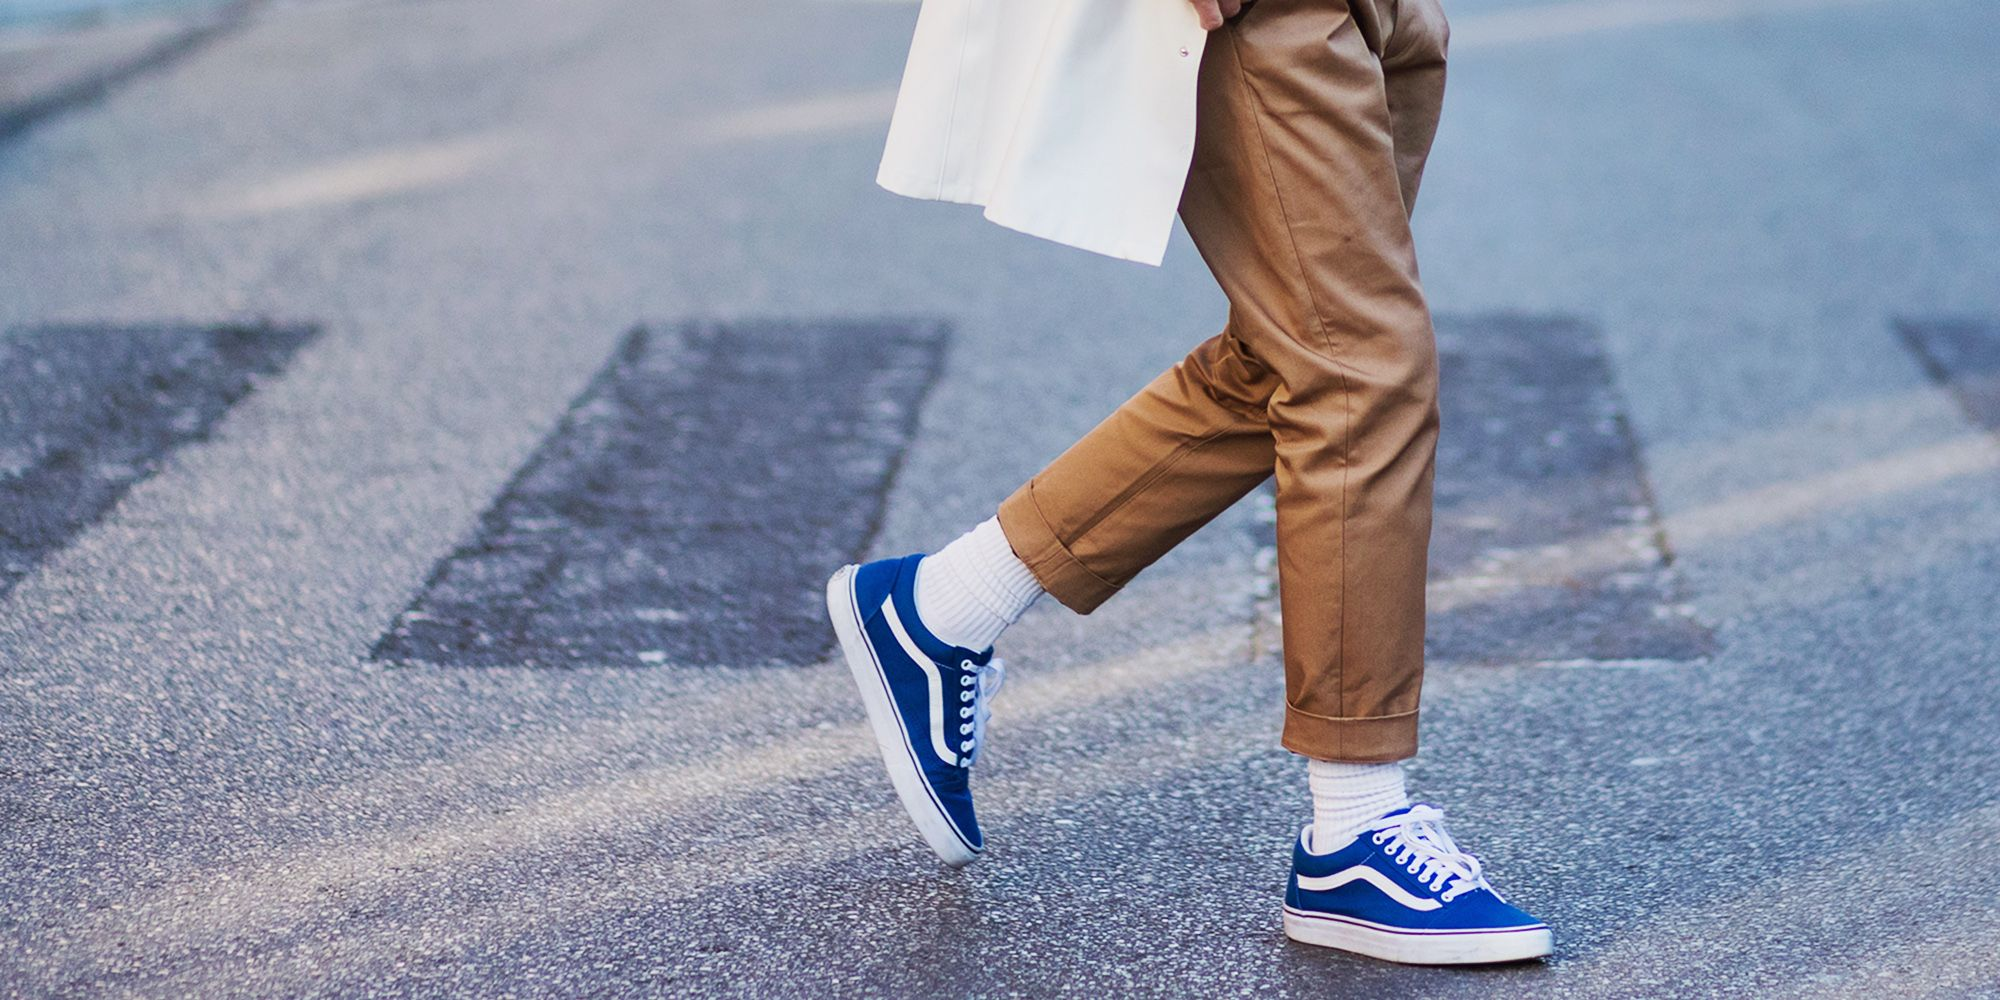 0e60f5744e9 14 Best Summer Shoes - Sneakers All Men Should Own 2019